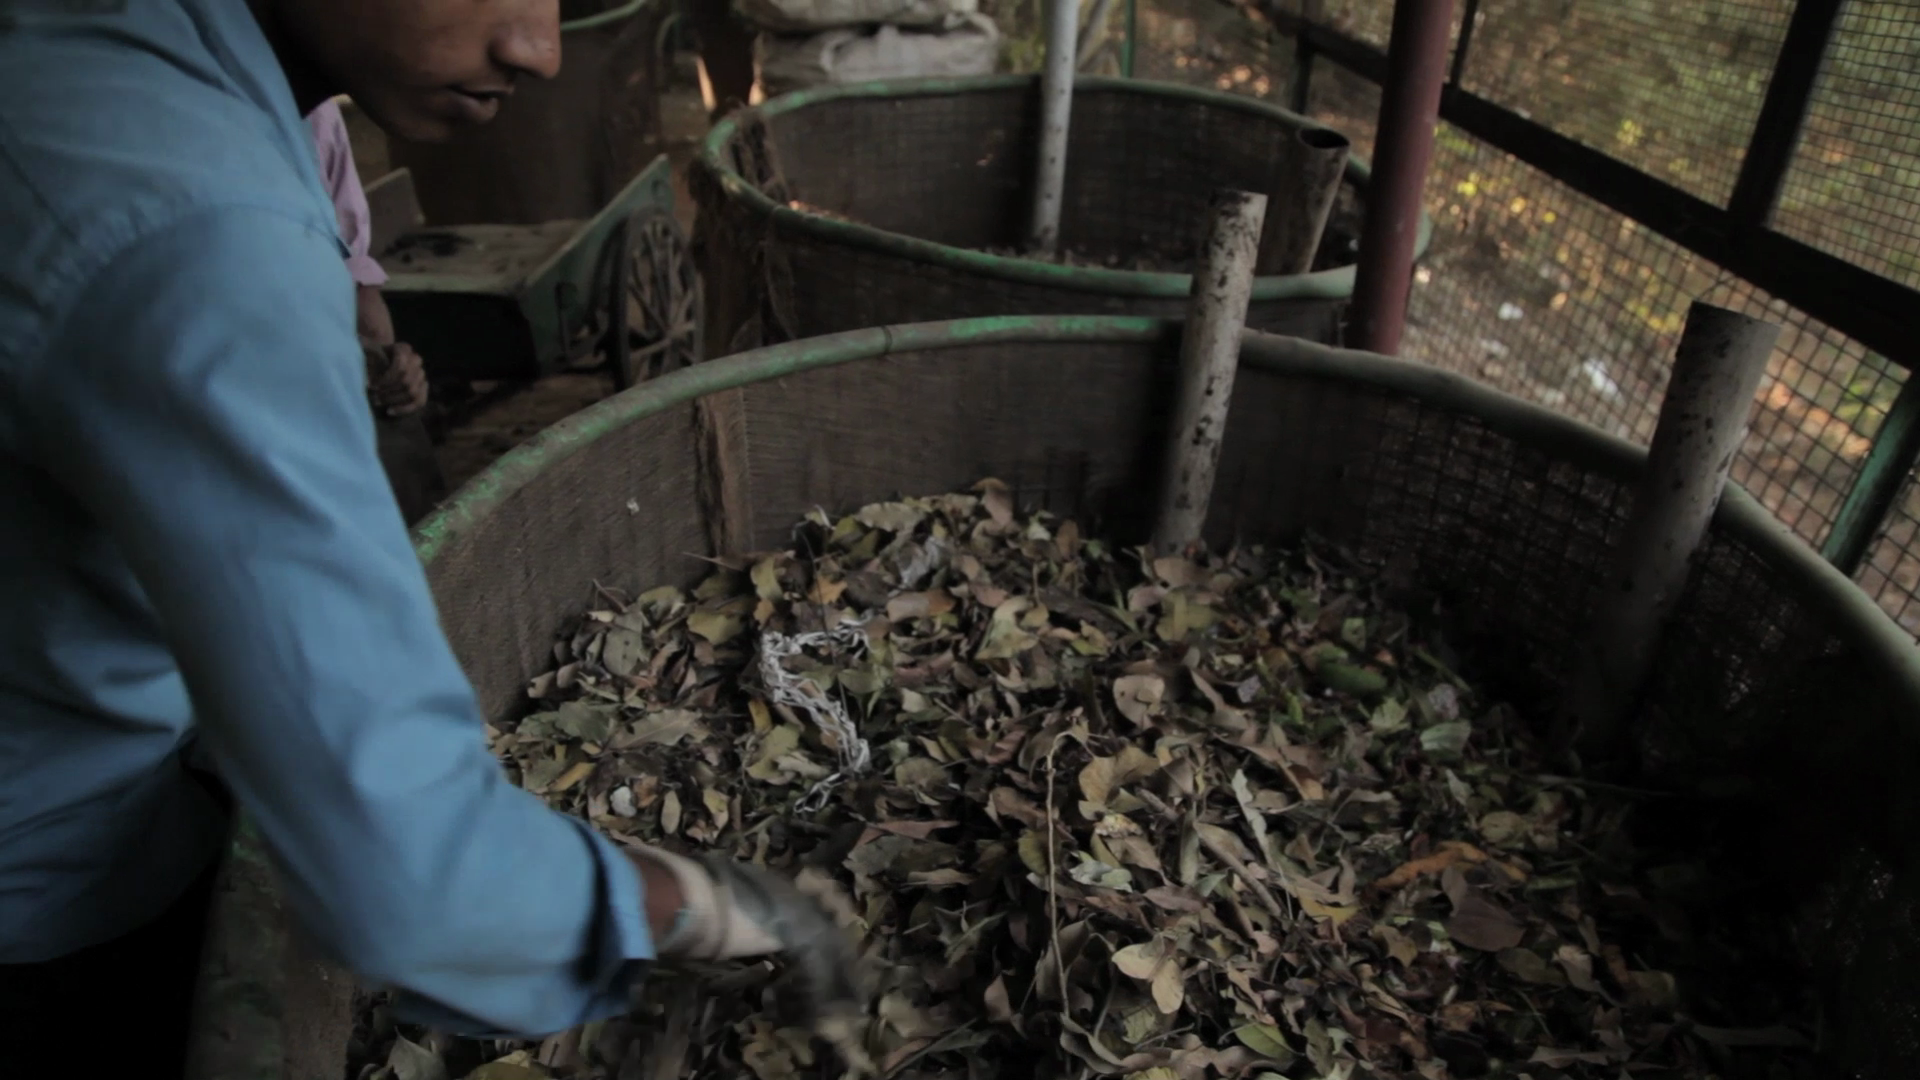 Housekeeping boys have been trained to cover the food waste properly with the leaves to ensure no smell or flies